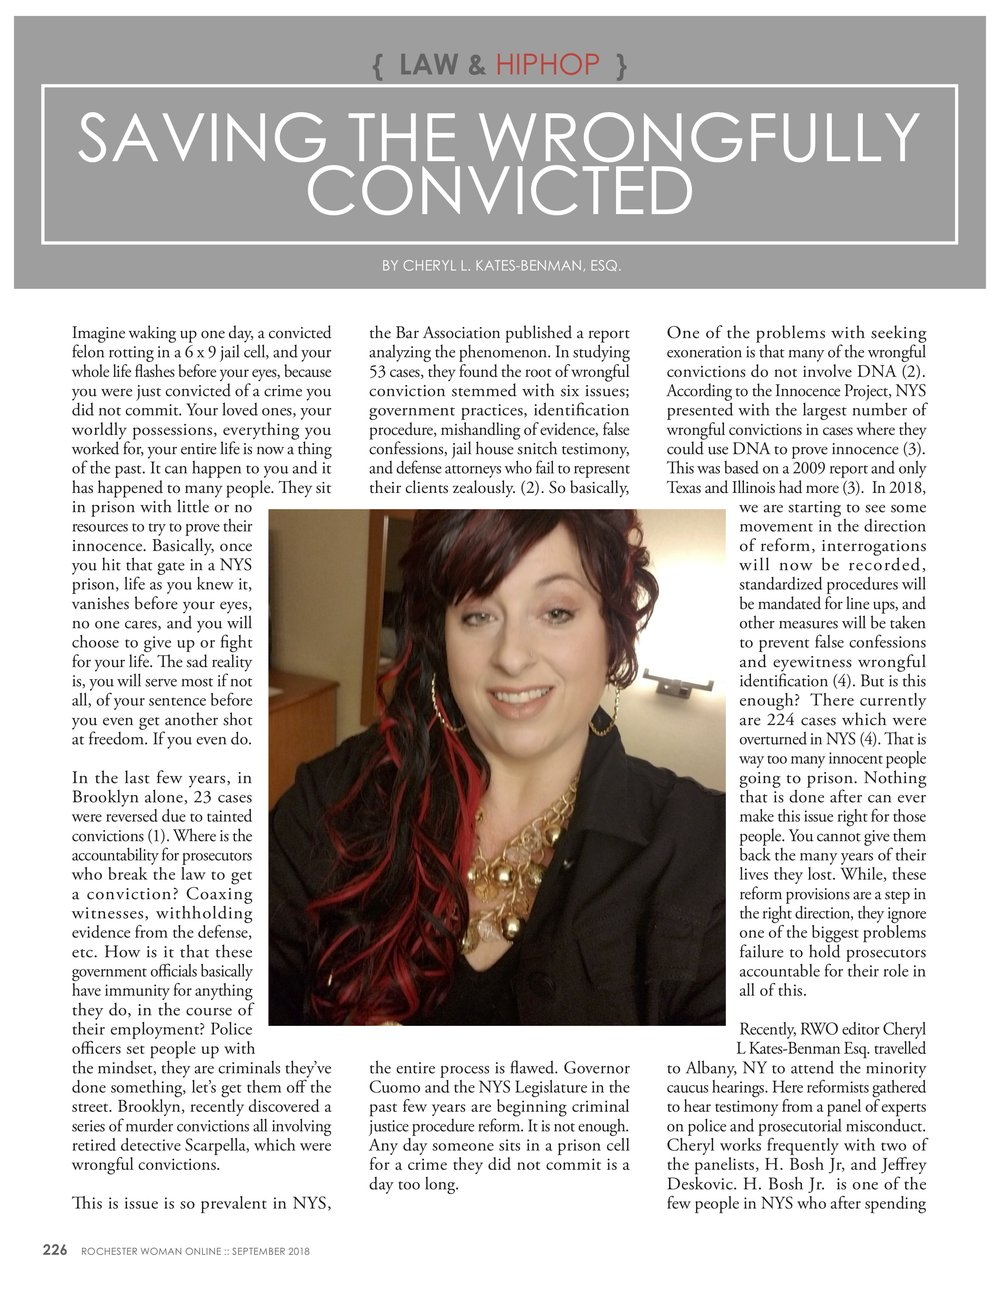 Saving the Wrongfully Convicted.jpg